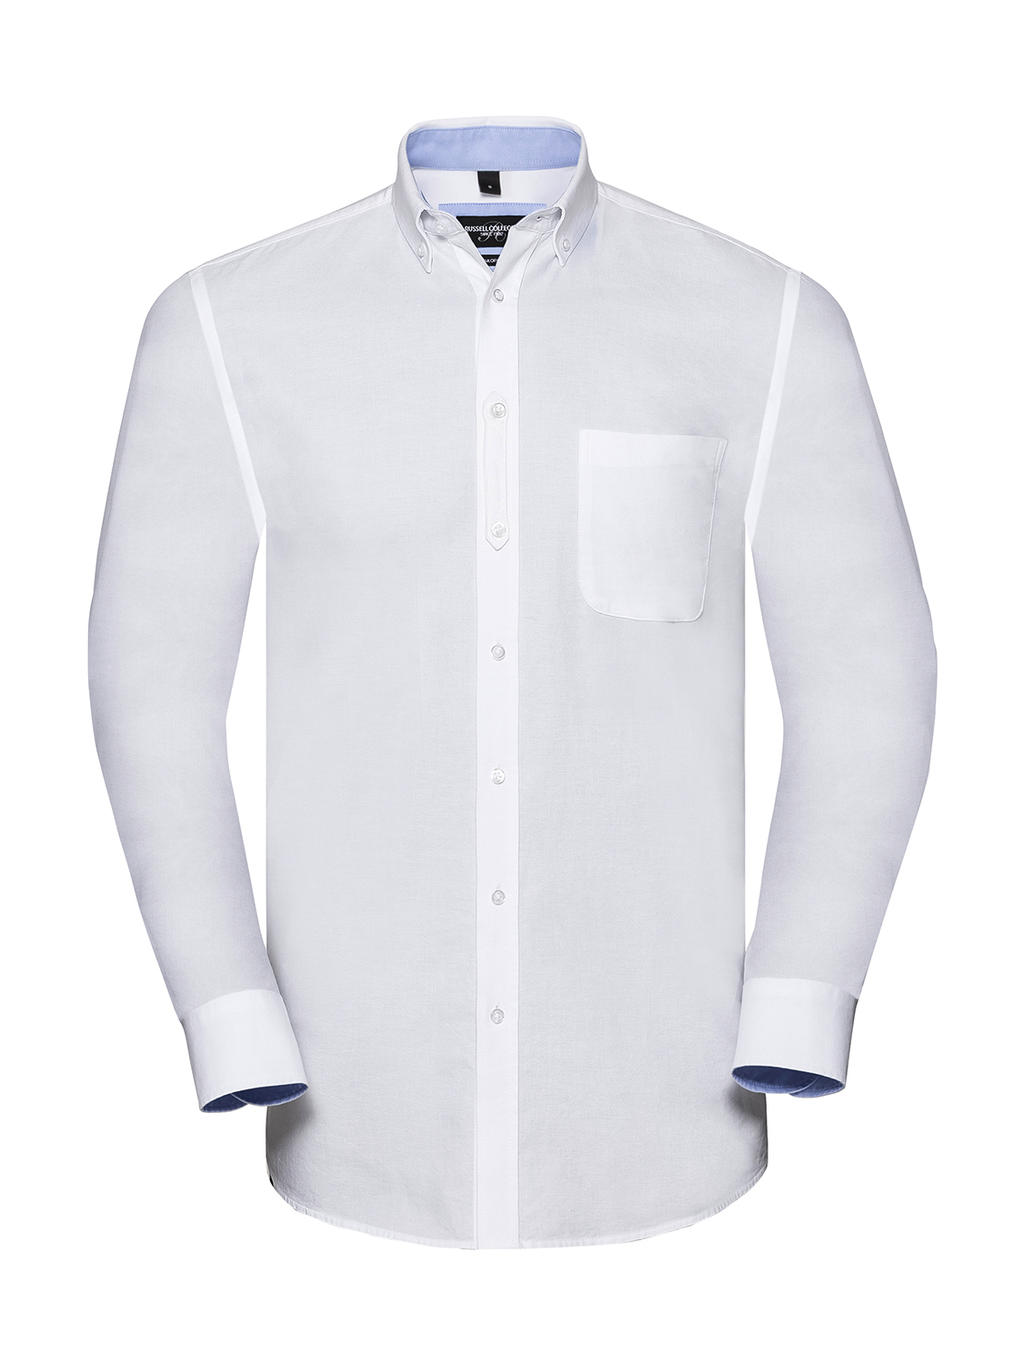 Men's LS Tailored Washed Oxford Shirt